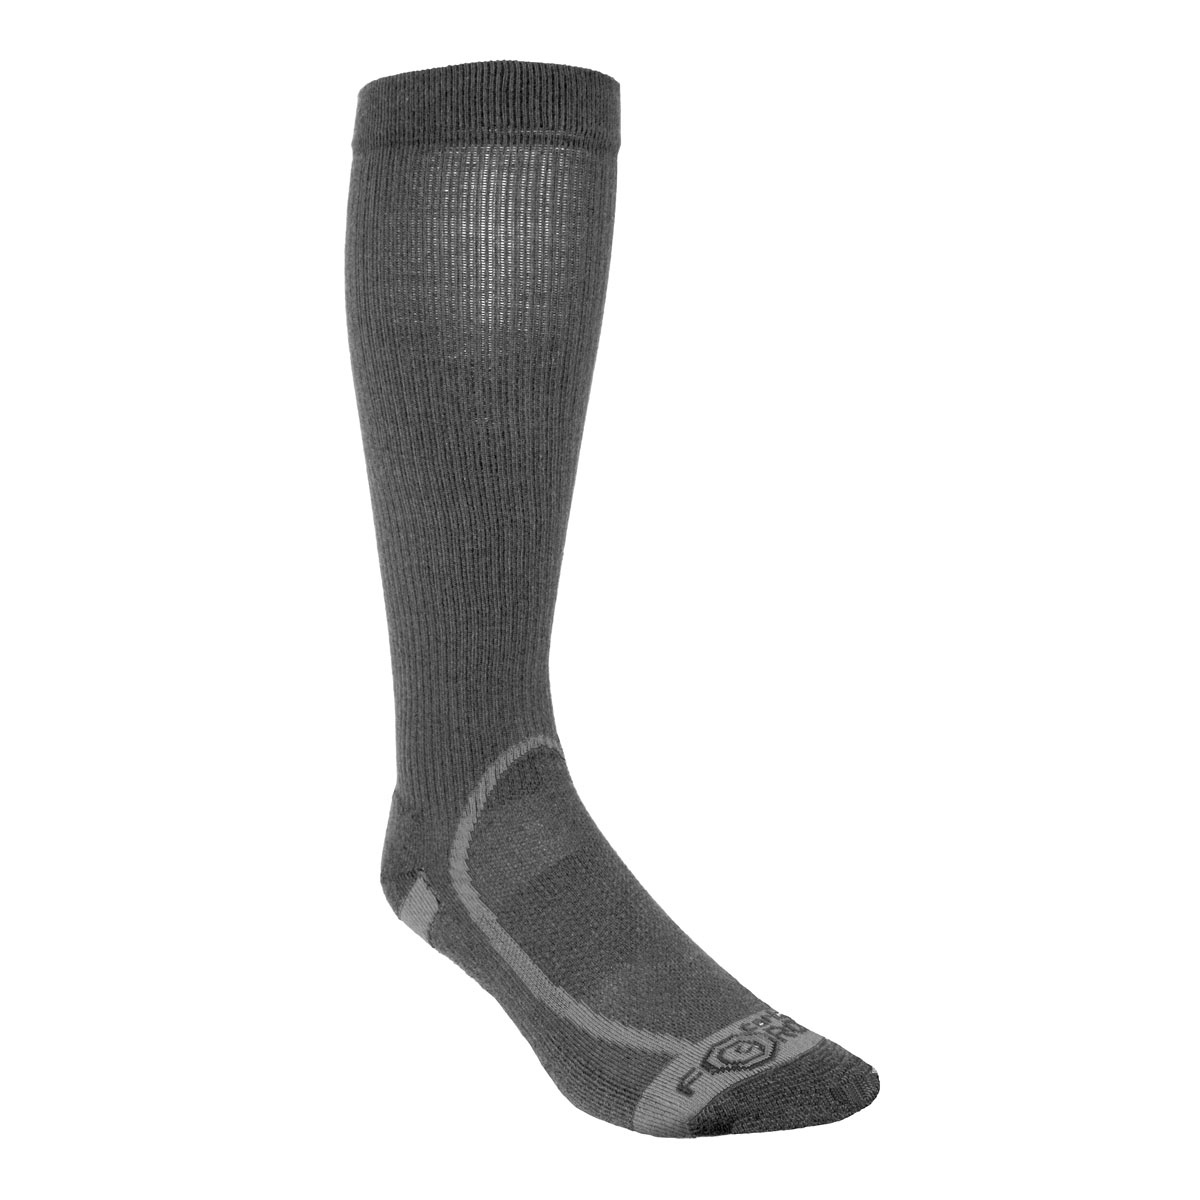 4ef21bca48 Accessorize With Men's Force Active Compression Socks - Scrubs